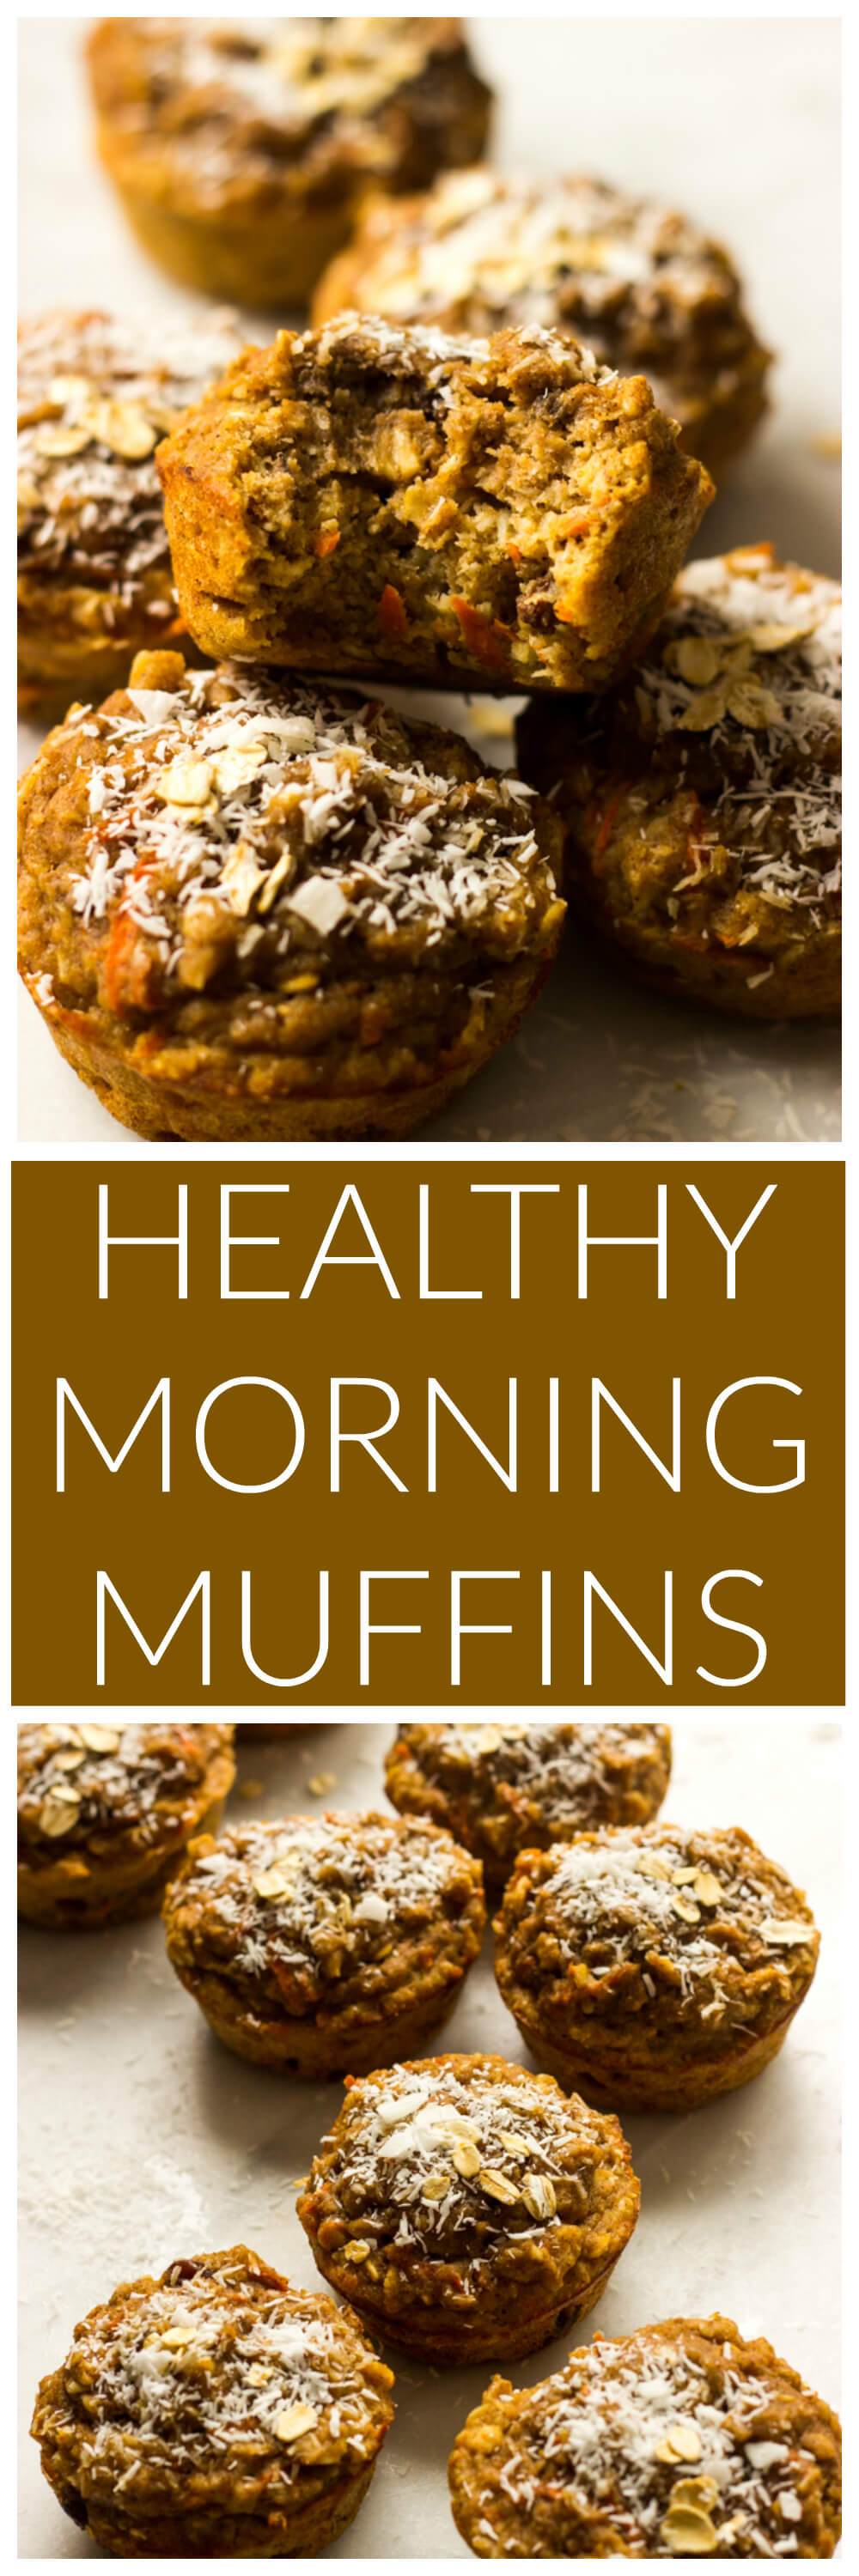 Healthy Morning Muffins - naturally sweetened, made with whole wheat flour, and insanely moist muffins | littlebroken.com @littlebroken